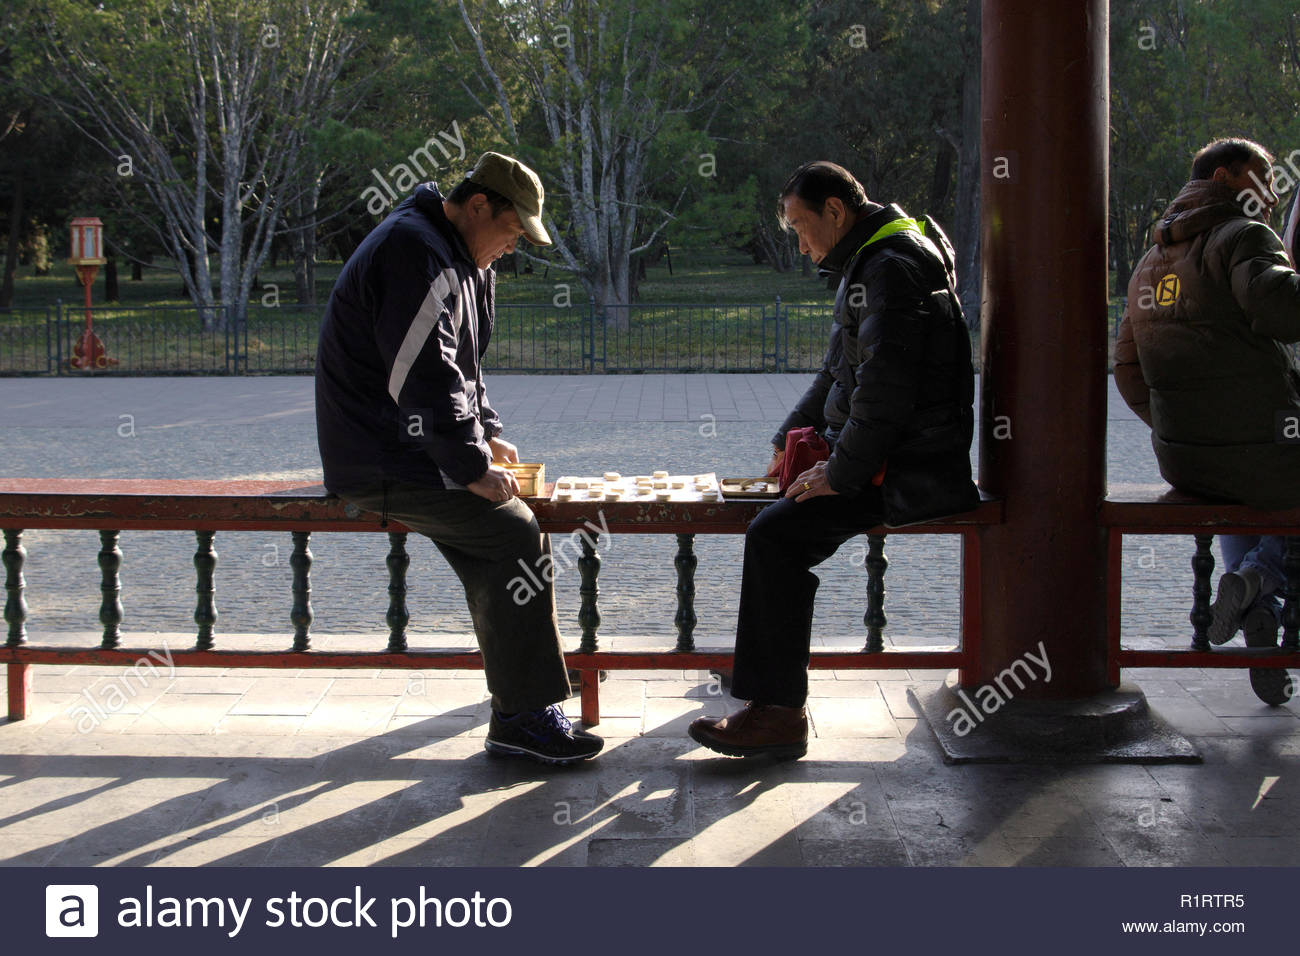 CHINESE PEOLPE PLAYING CHESS (XIANGQI) IN A PARK, BEIJING, PEOPLE'S REPUBLIC OF CHINA - Stock Image